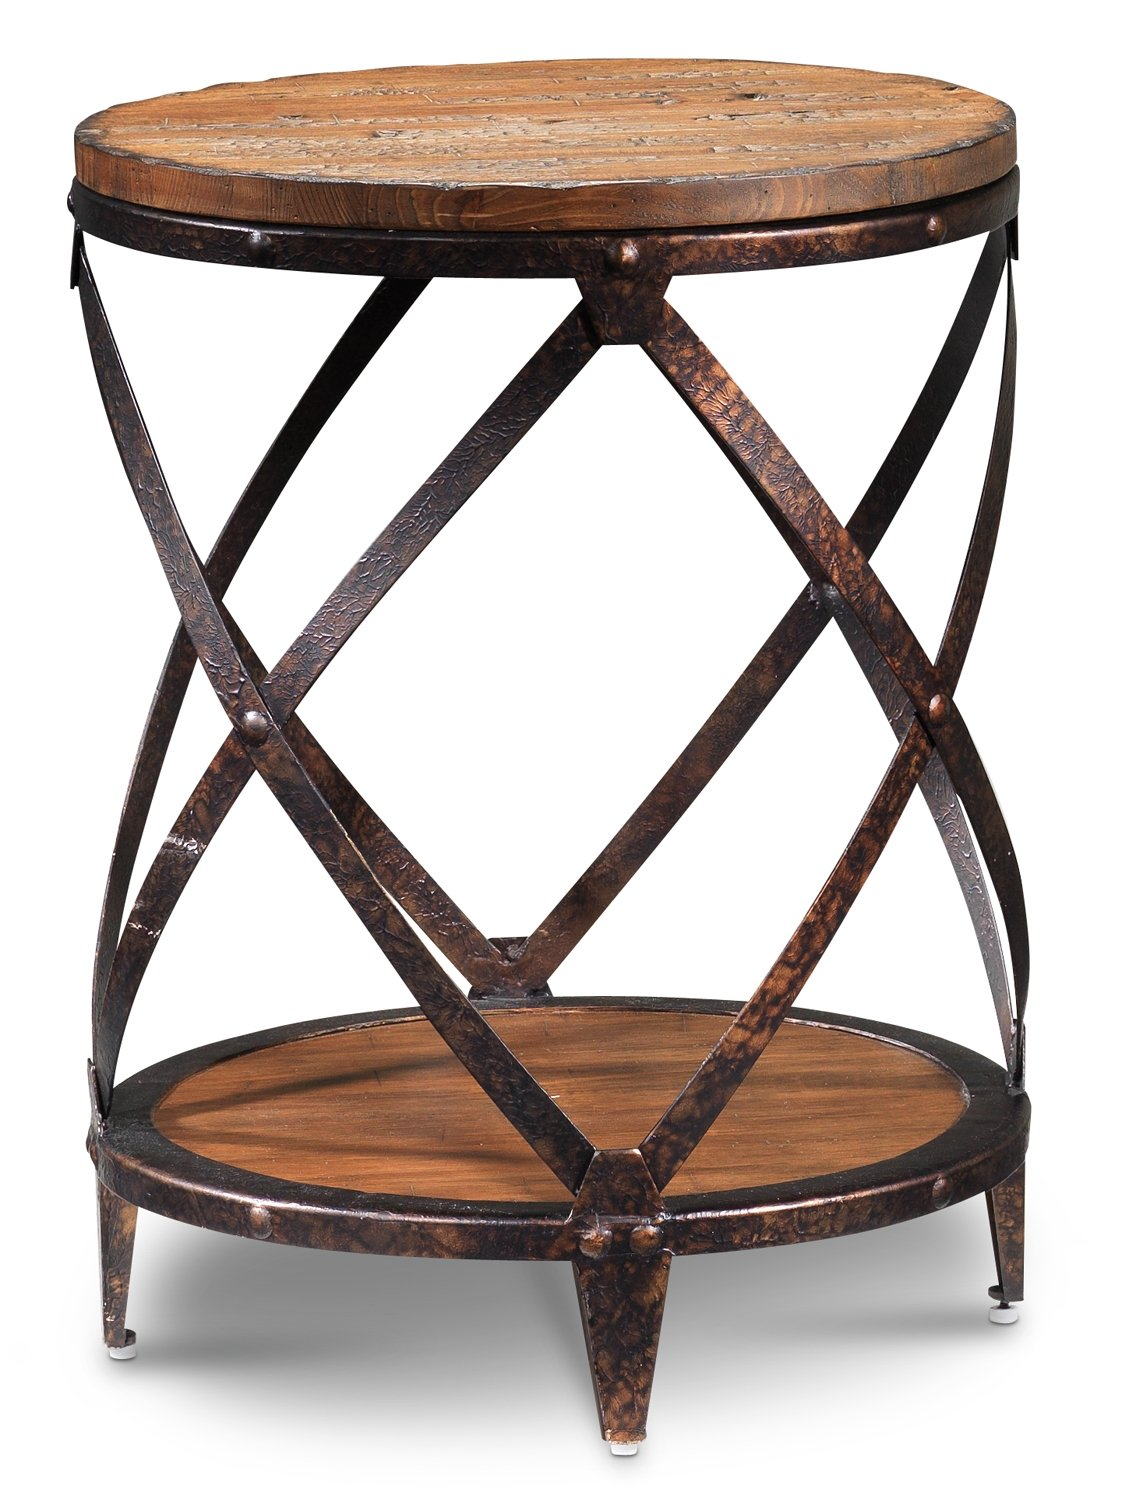 pinebrook round end table distressed natural pine leon macys furniture brands replace glass coffee with tile wood top living room tables dog crate cast iron pipe base acme marble